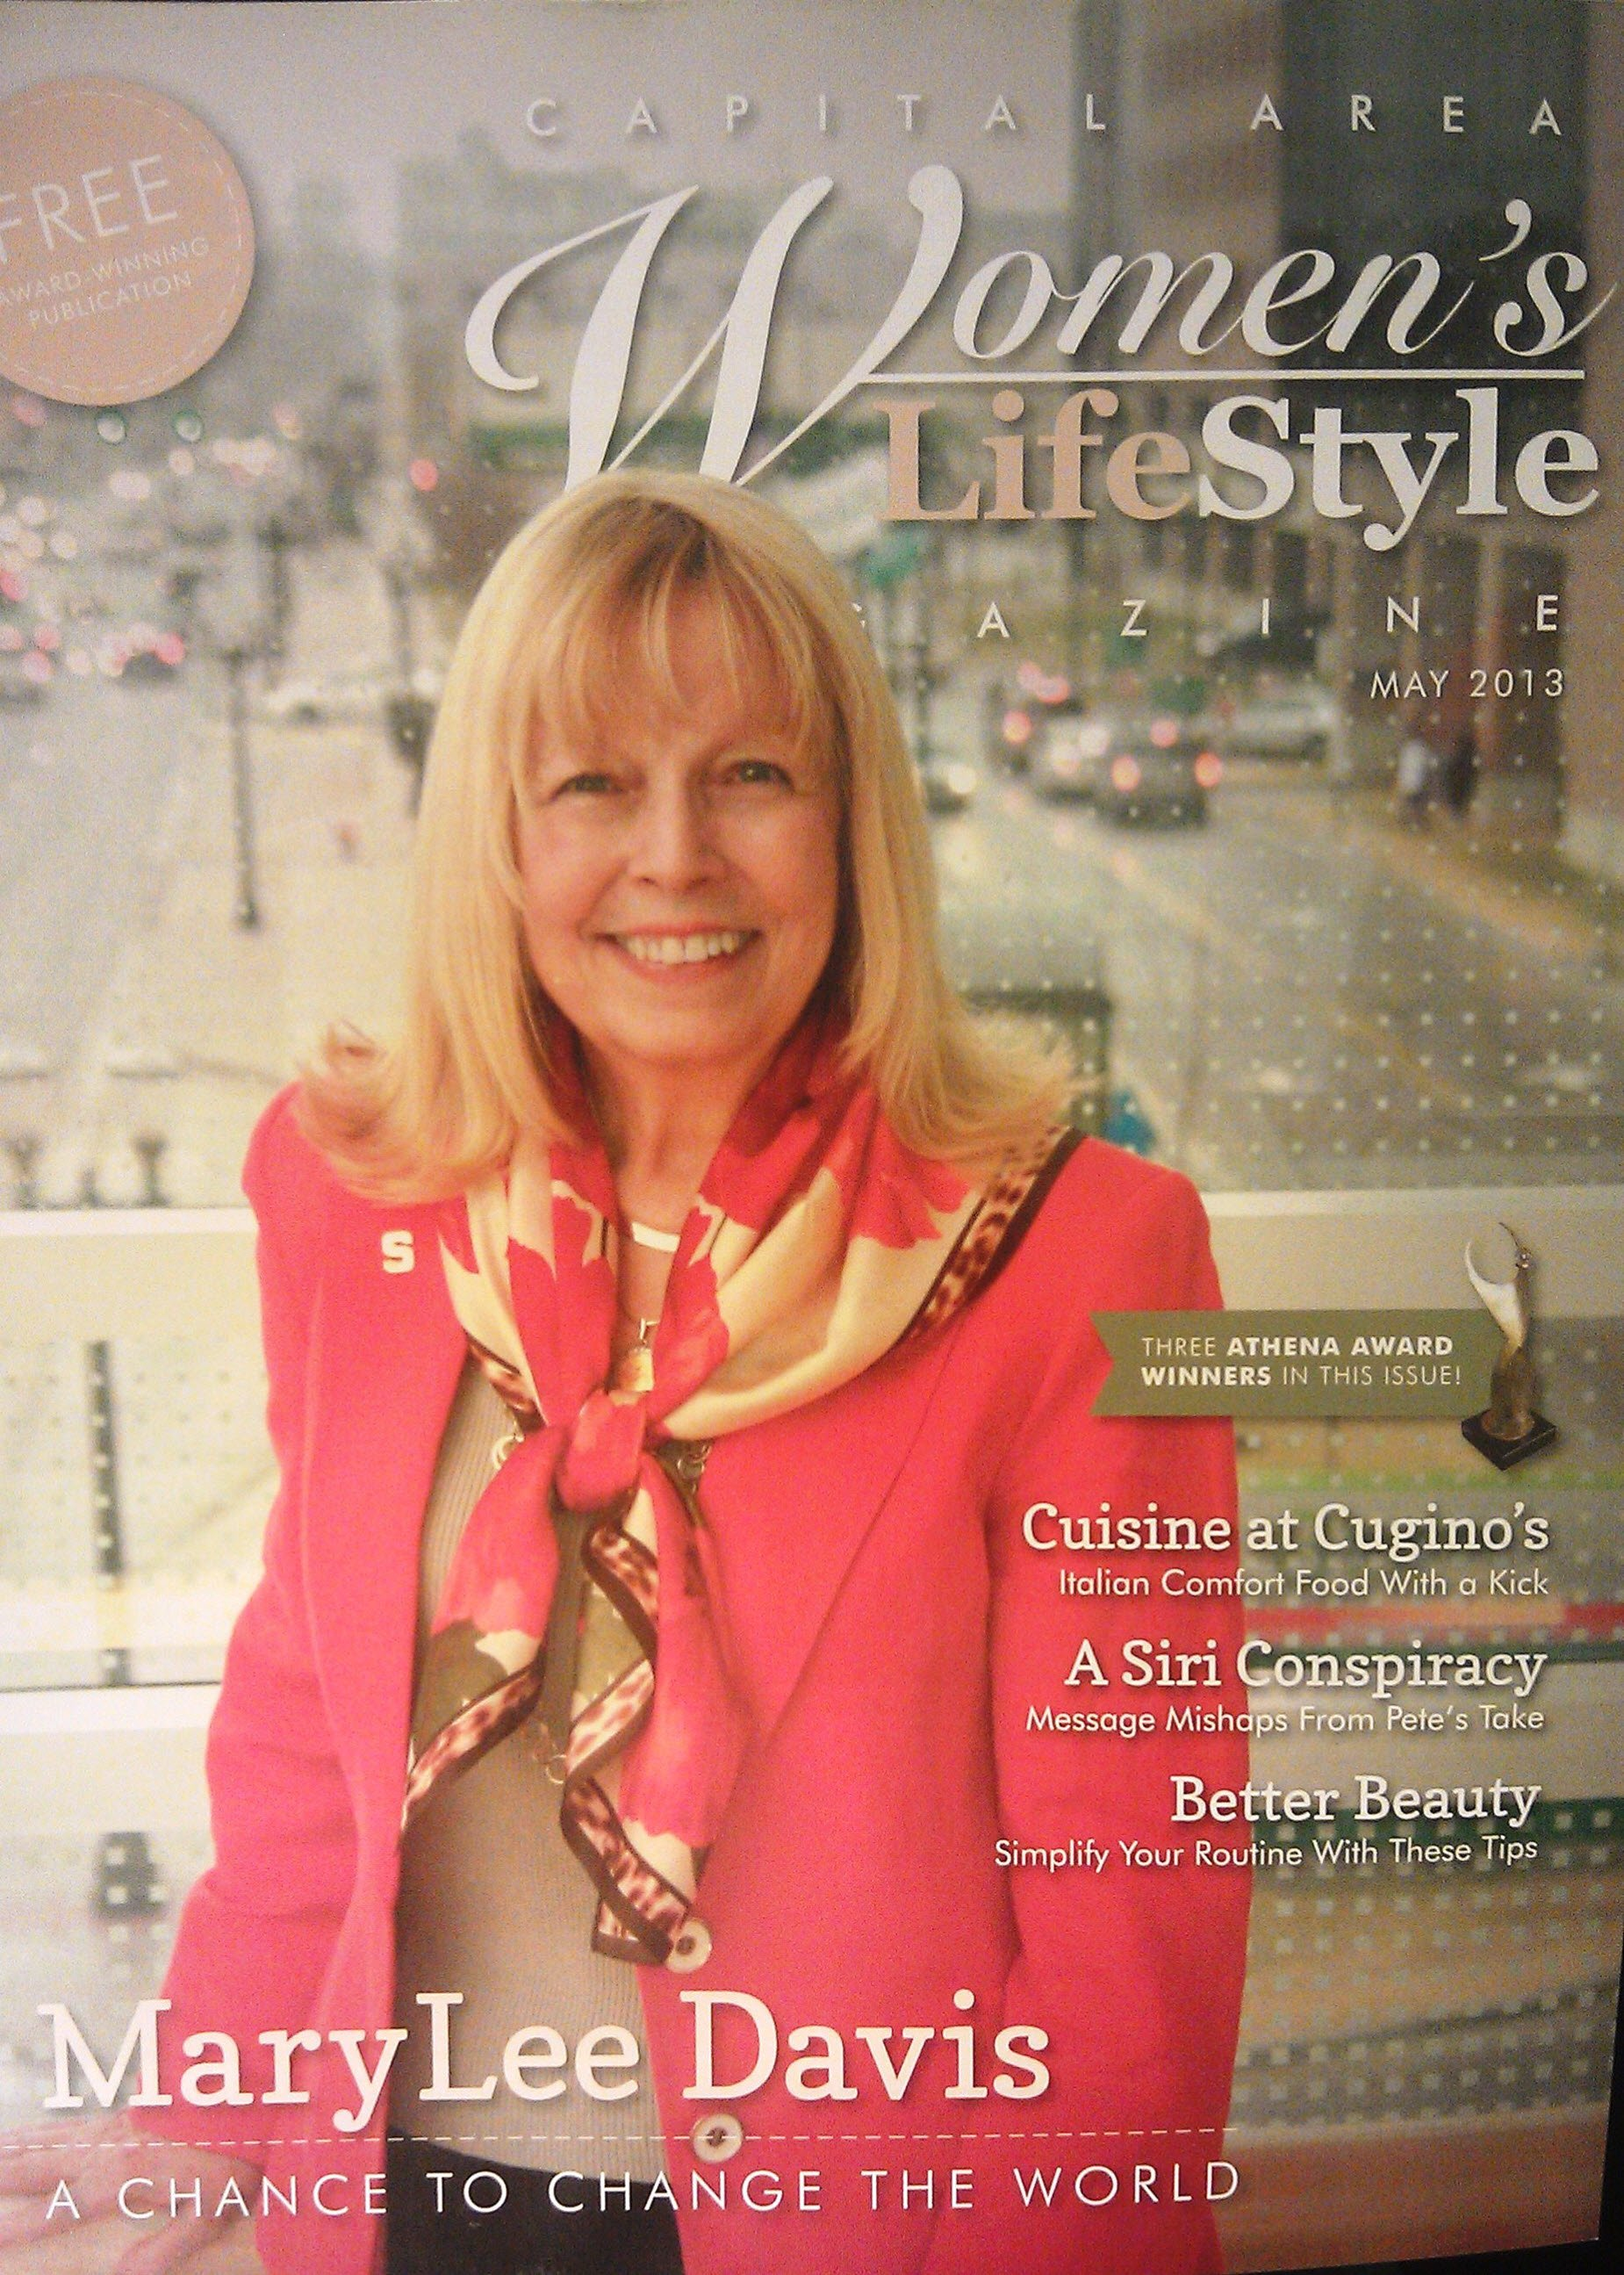 Click the photo above to read the full article that appeared in the Capital Area Women's Lifestyle Magazine